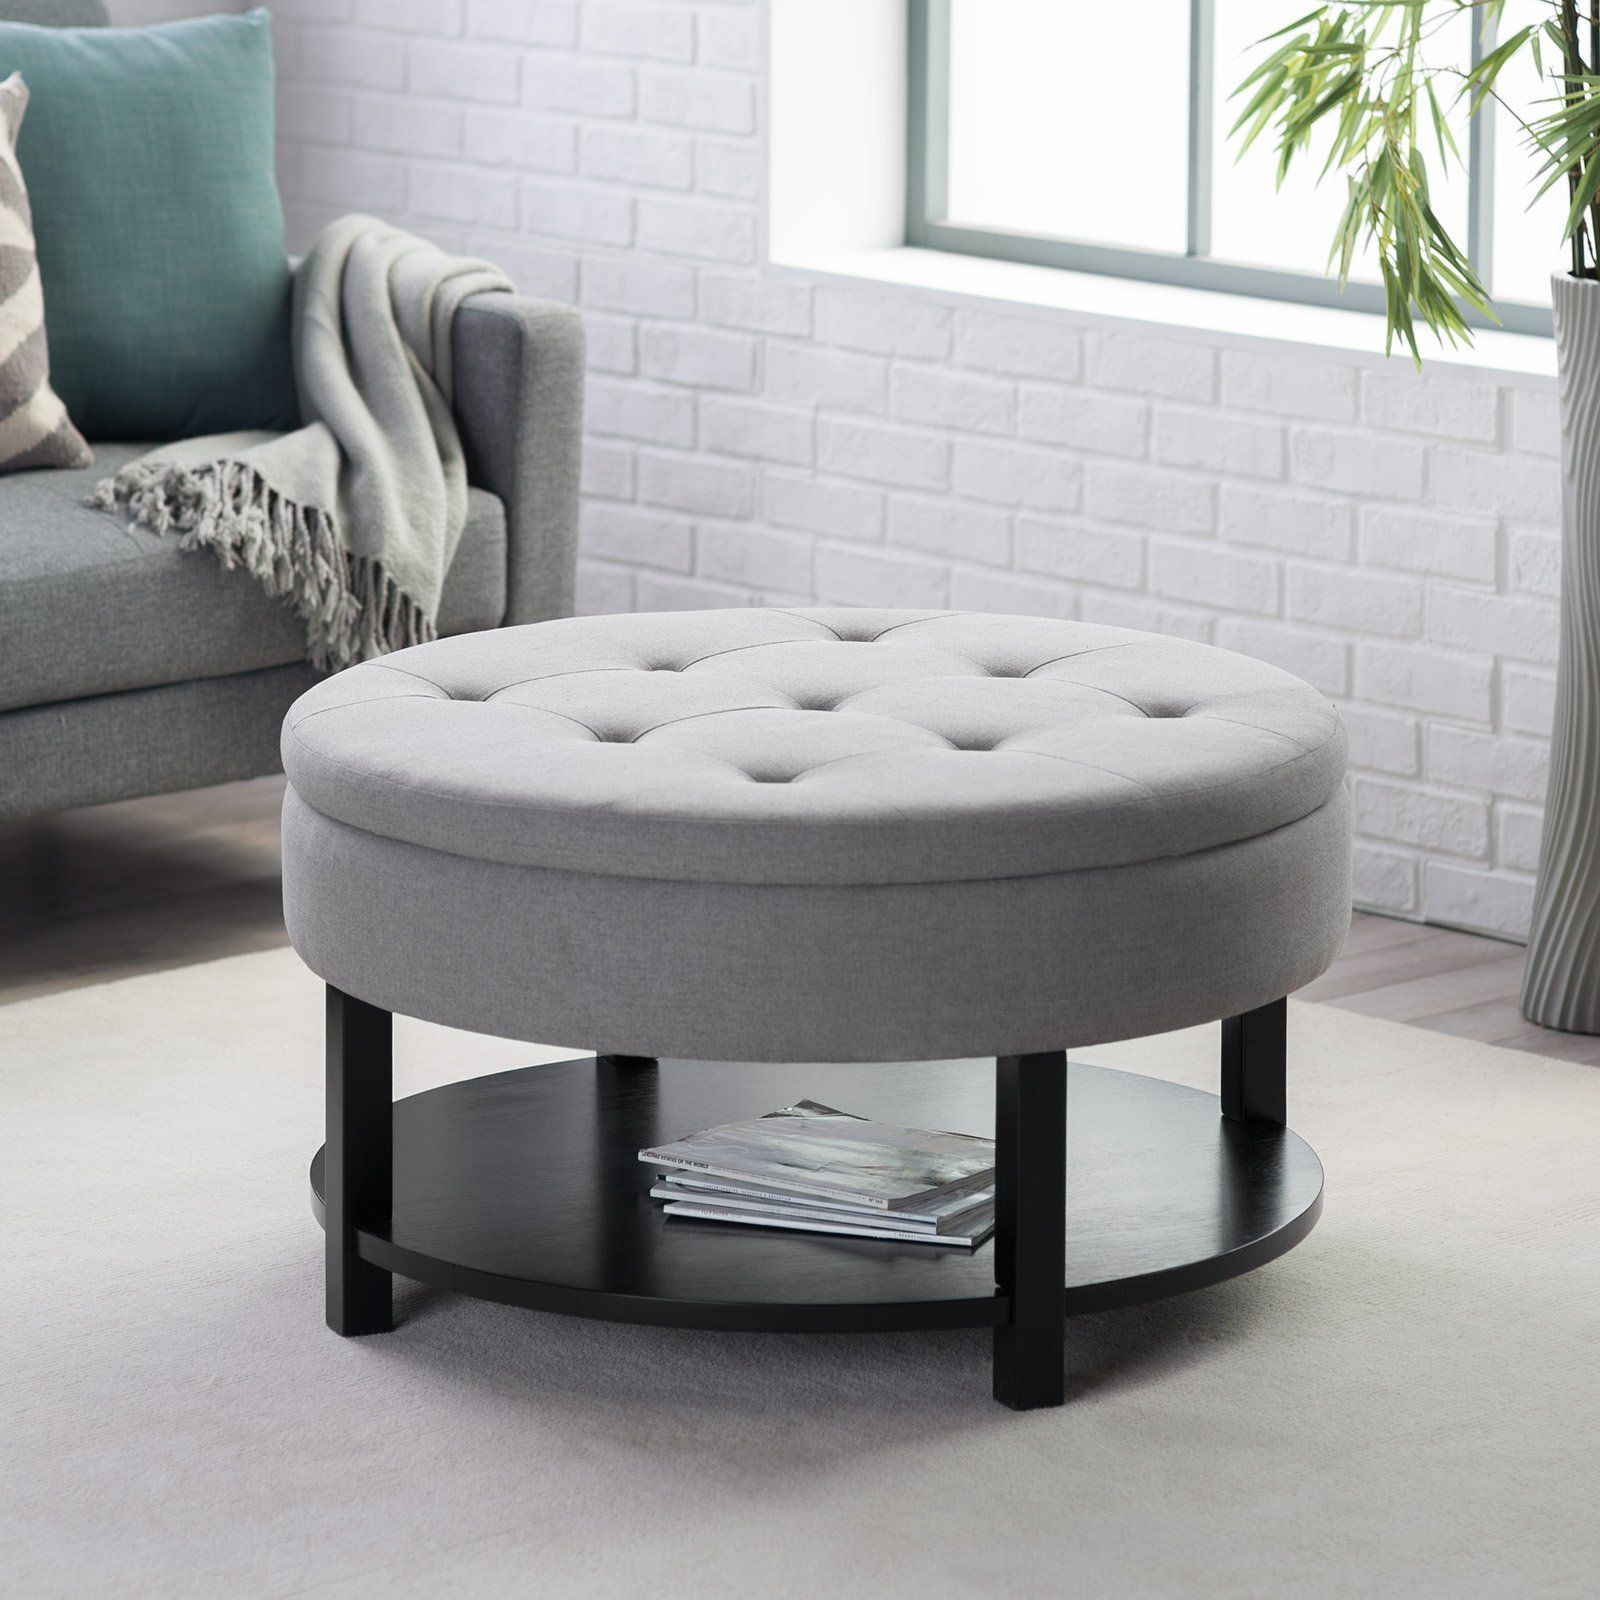 Ottoman Belham Living Dalton Coffee Table Round Tufted